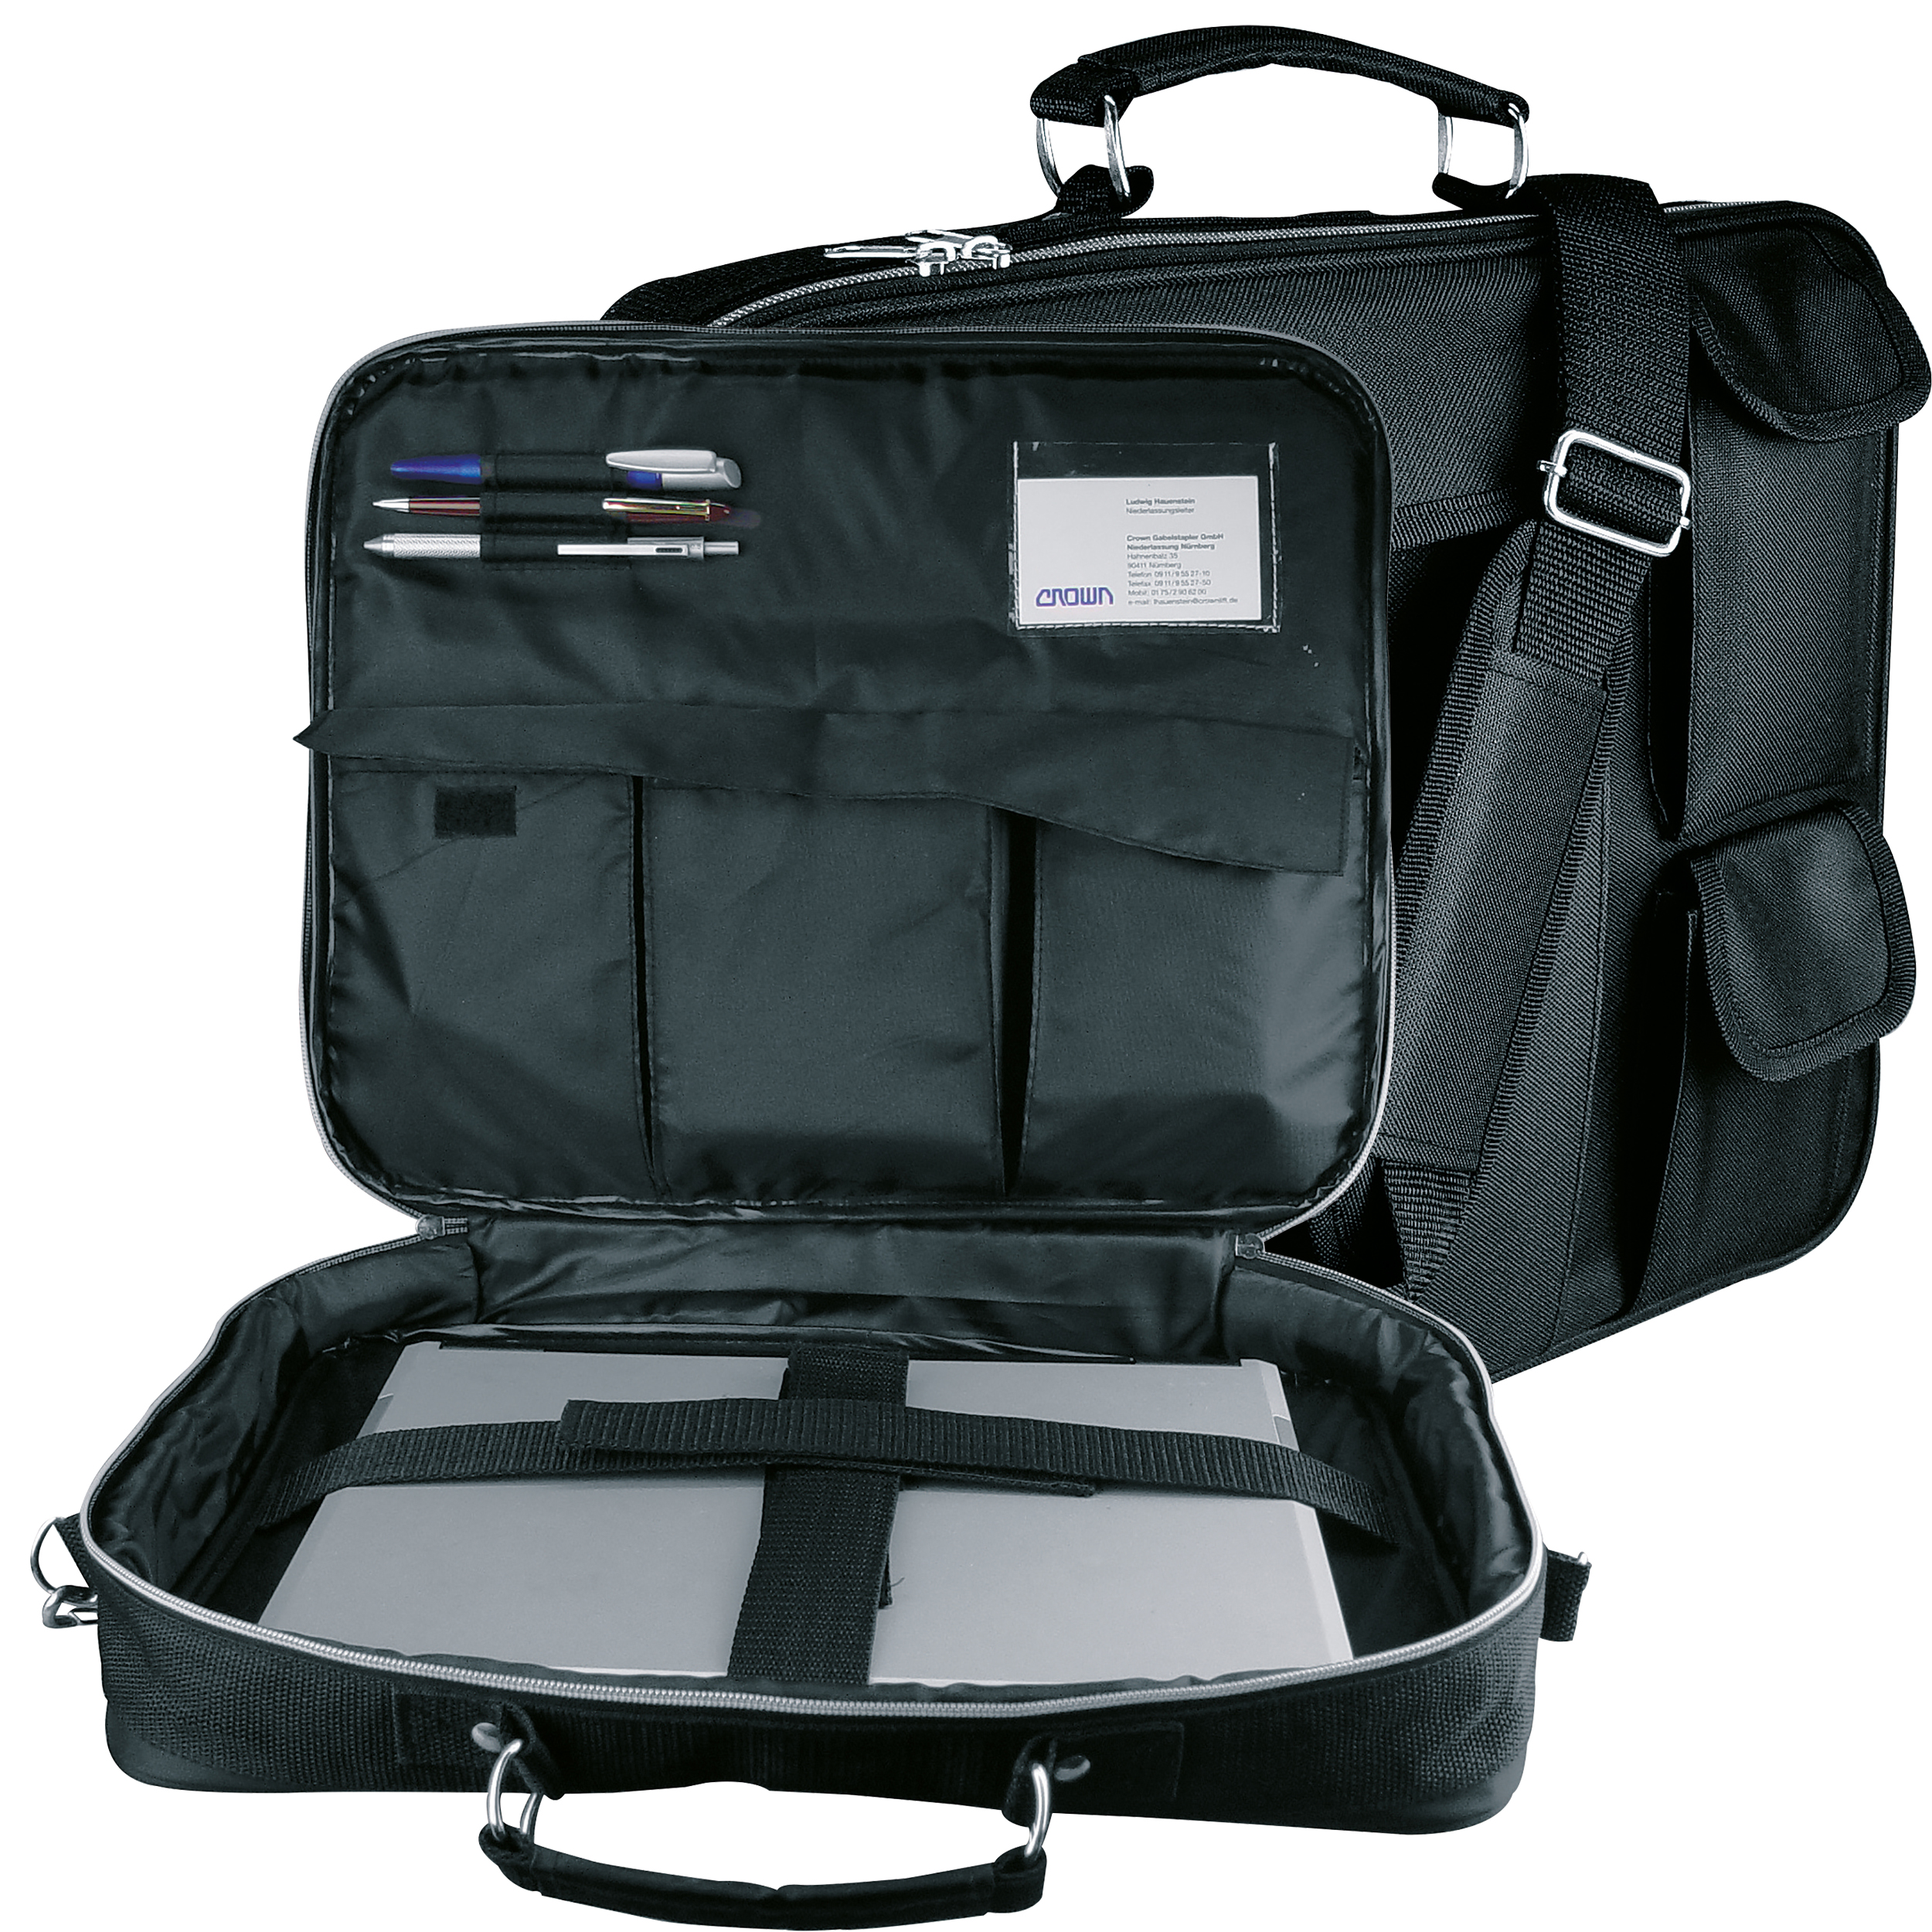 CrisMa laptop bag, polyester